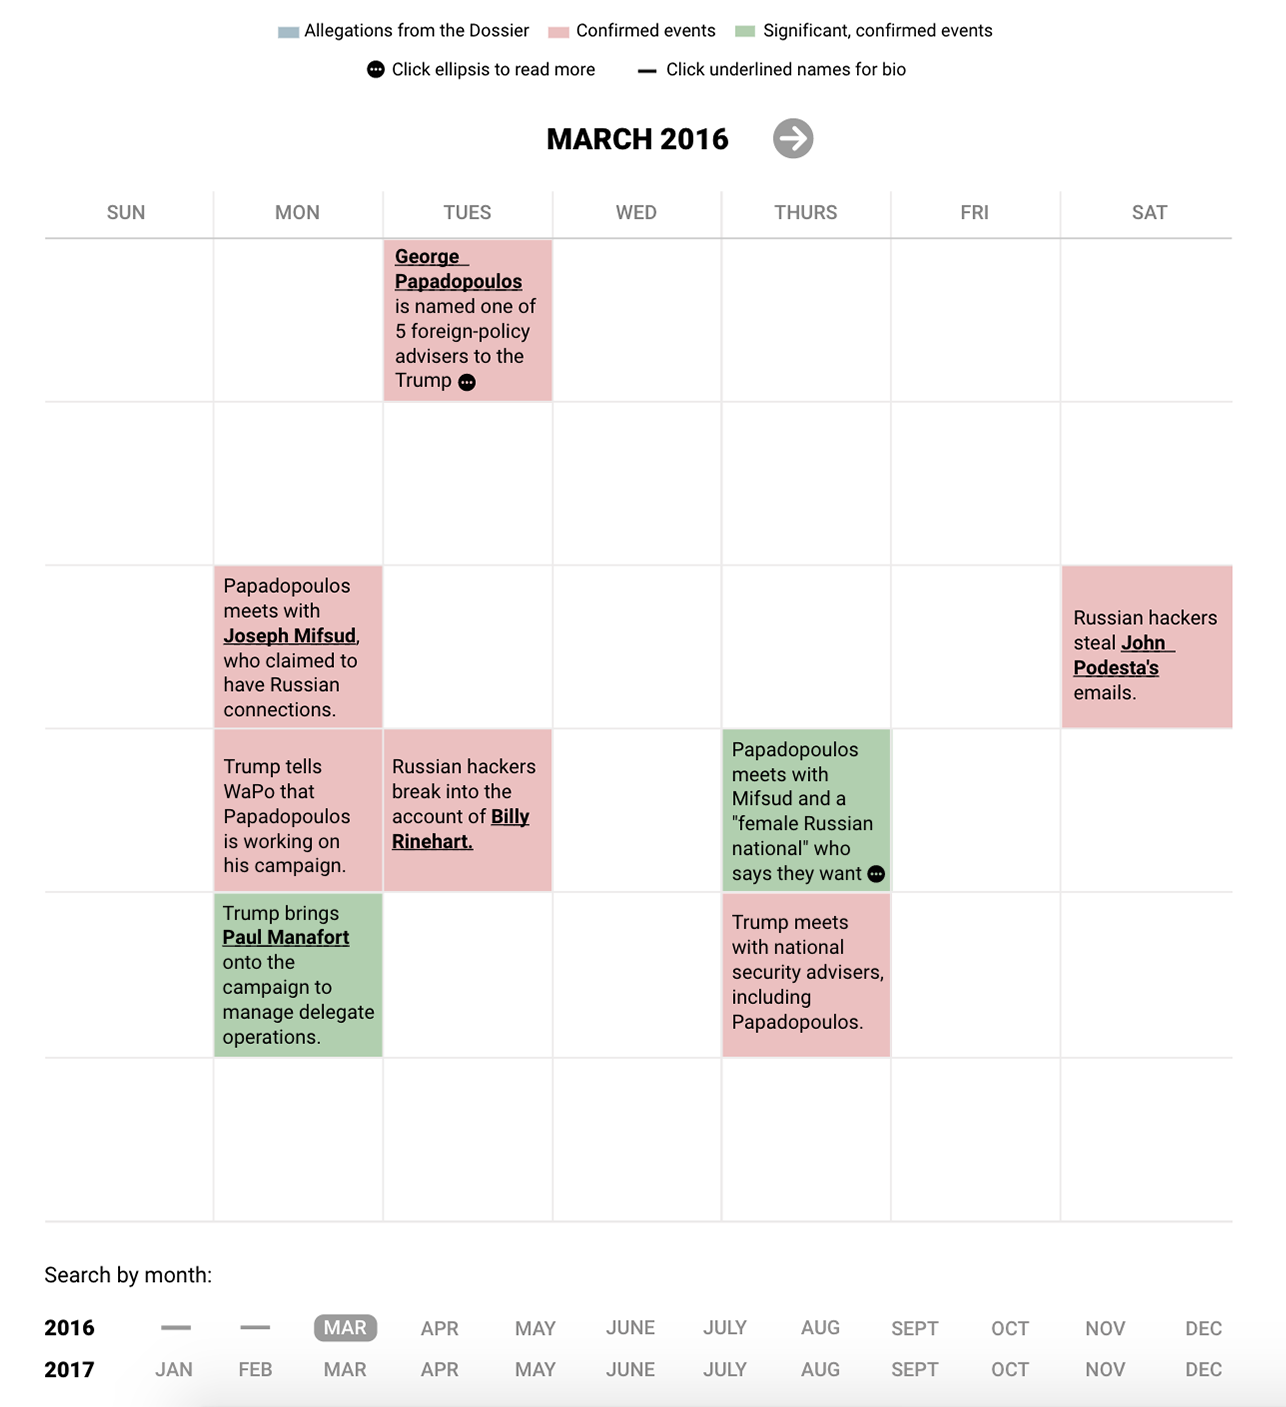 an interactive calendar of all of the events associated with the russia investigation over the past year